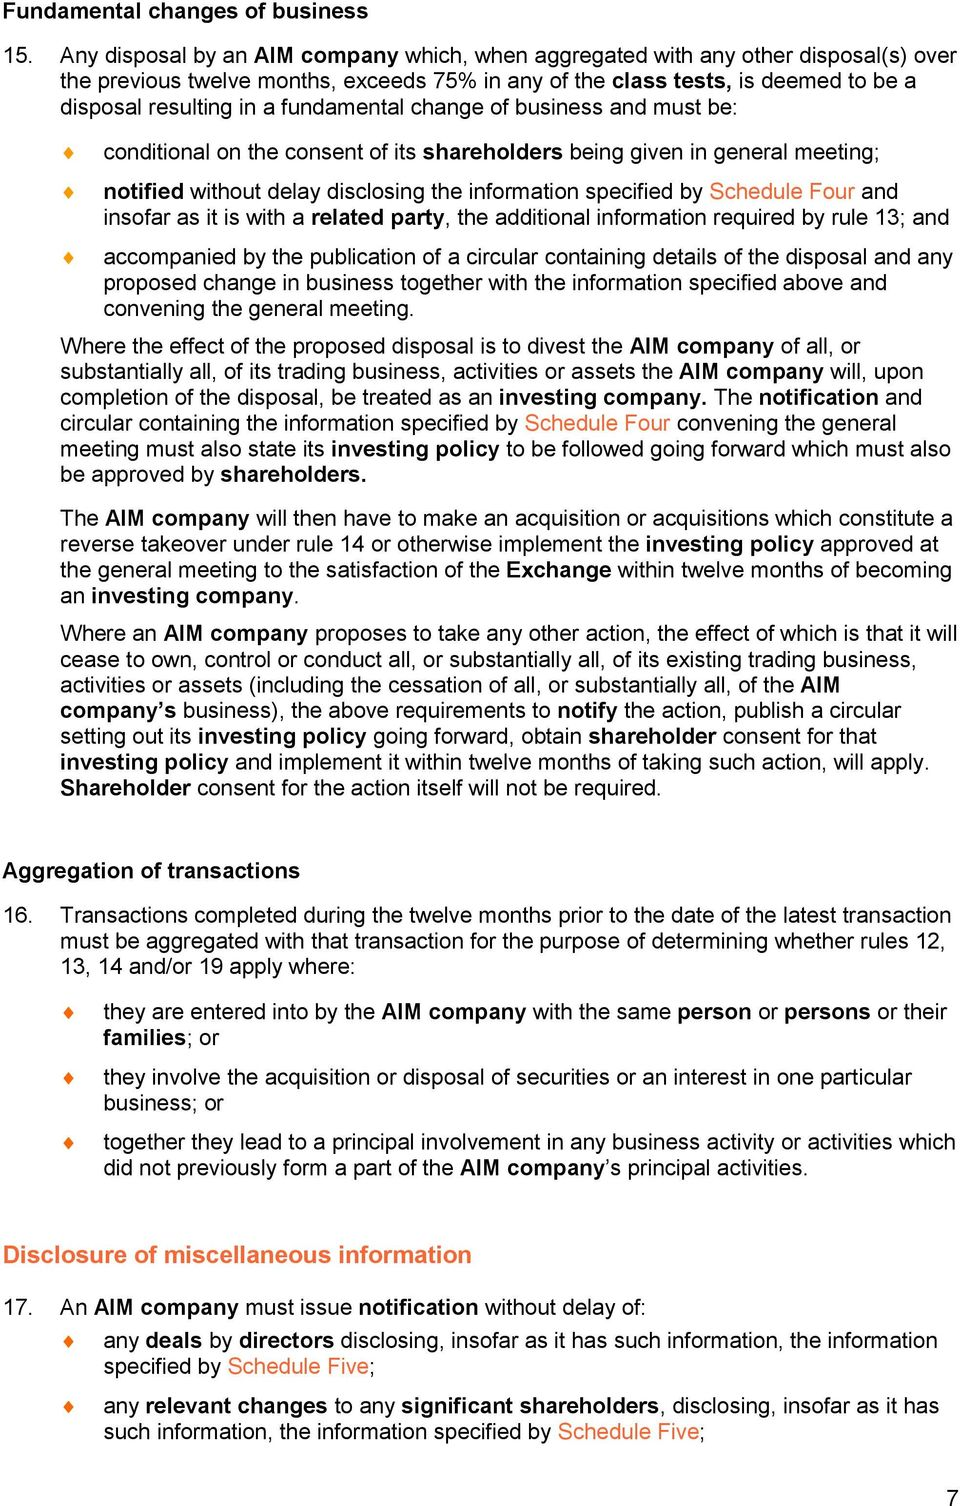 fundamental change of business and must be: conditional on the consent of its shareholders being given in general meeting; notified without delay disclosing the information specified by Schedule Four